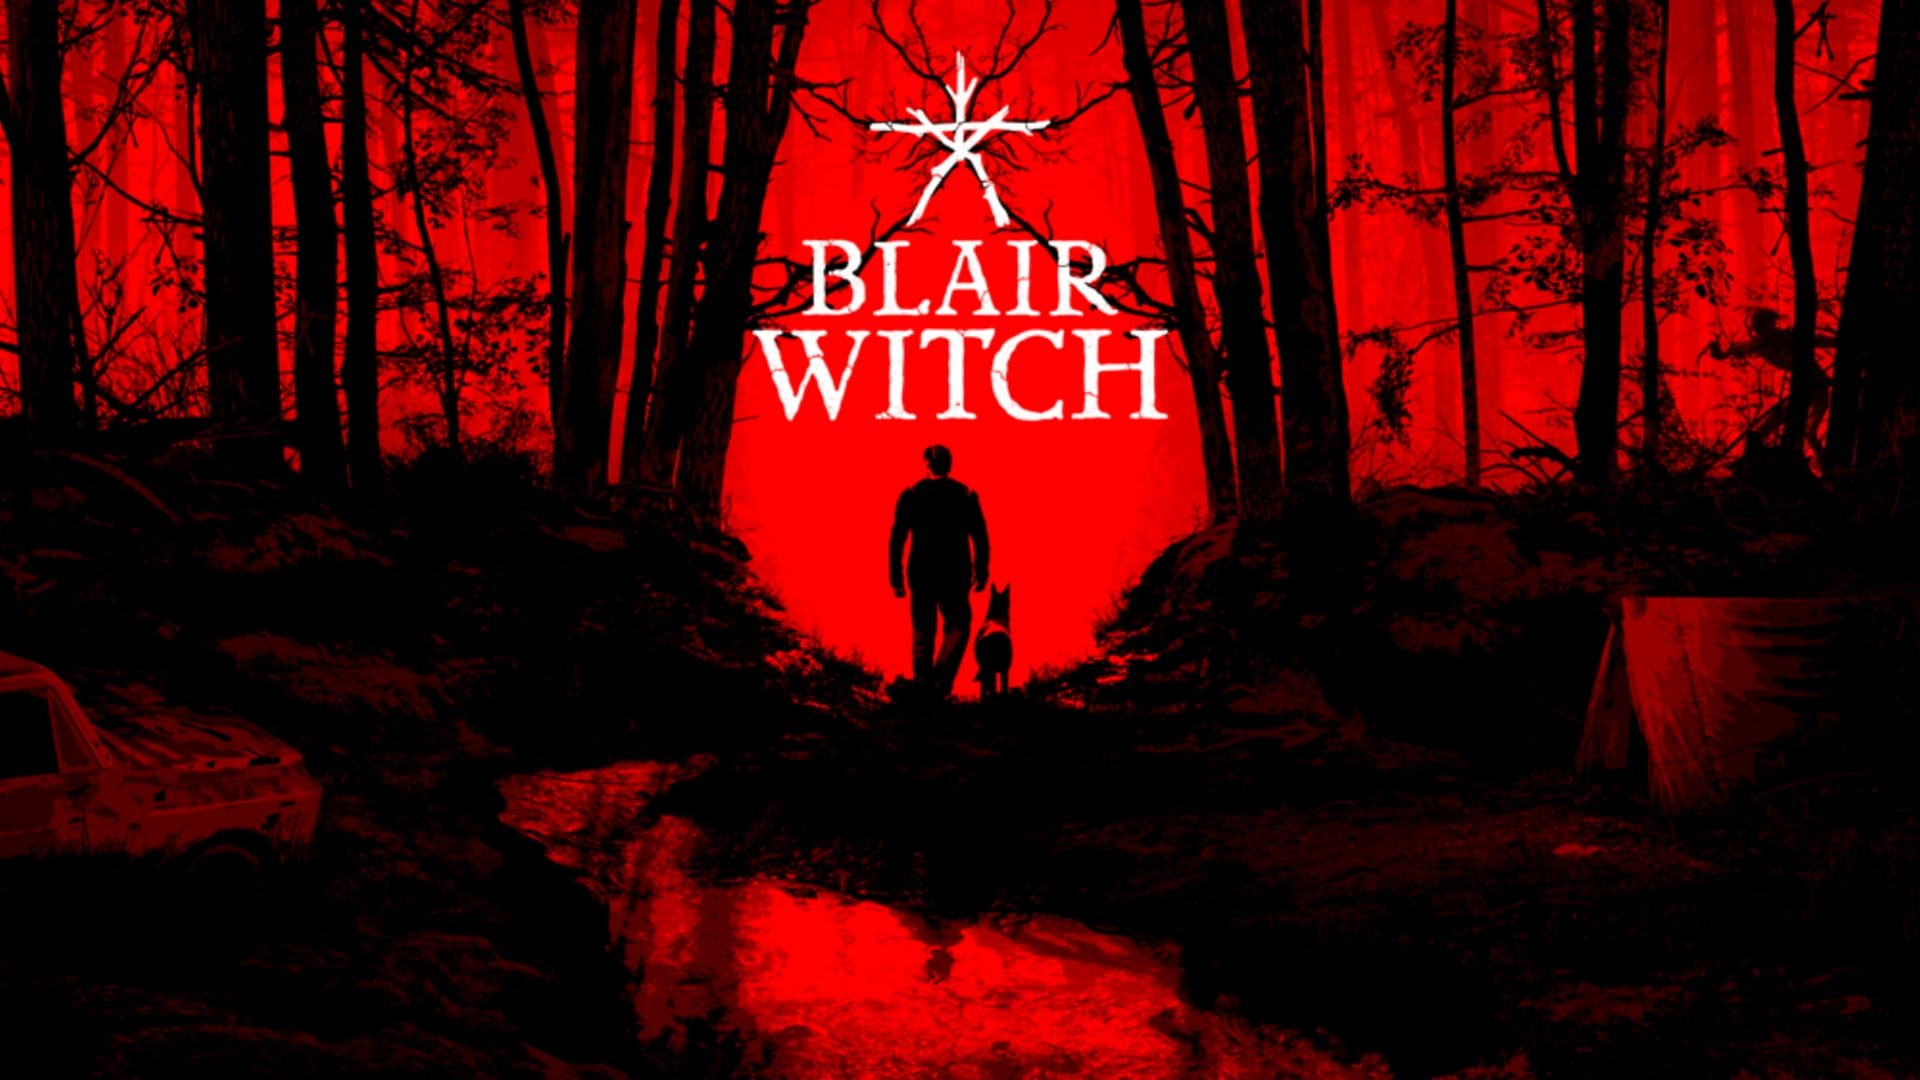 Blair Witch PC Version Full Game Free Download 2019